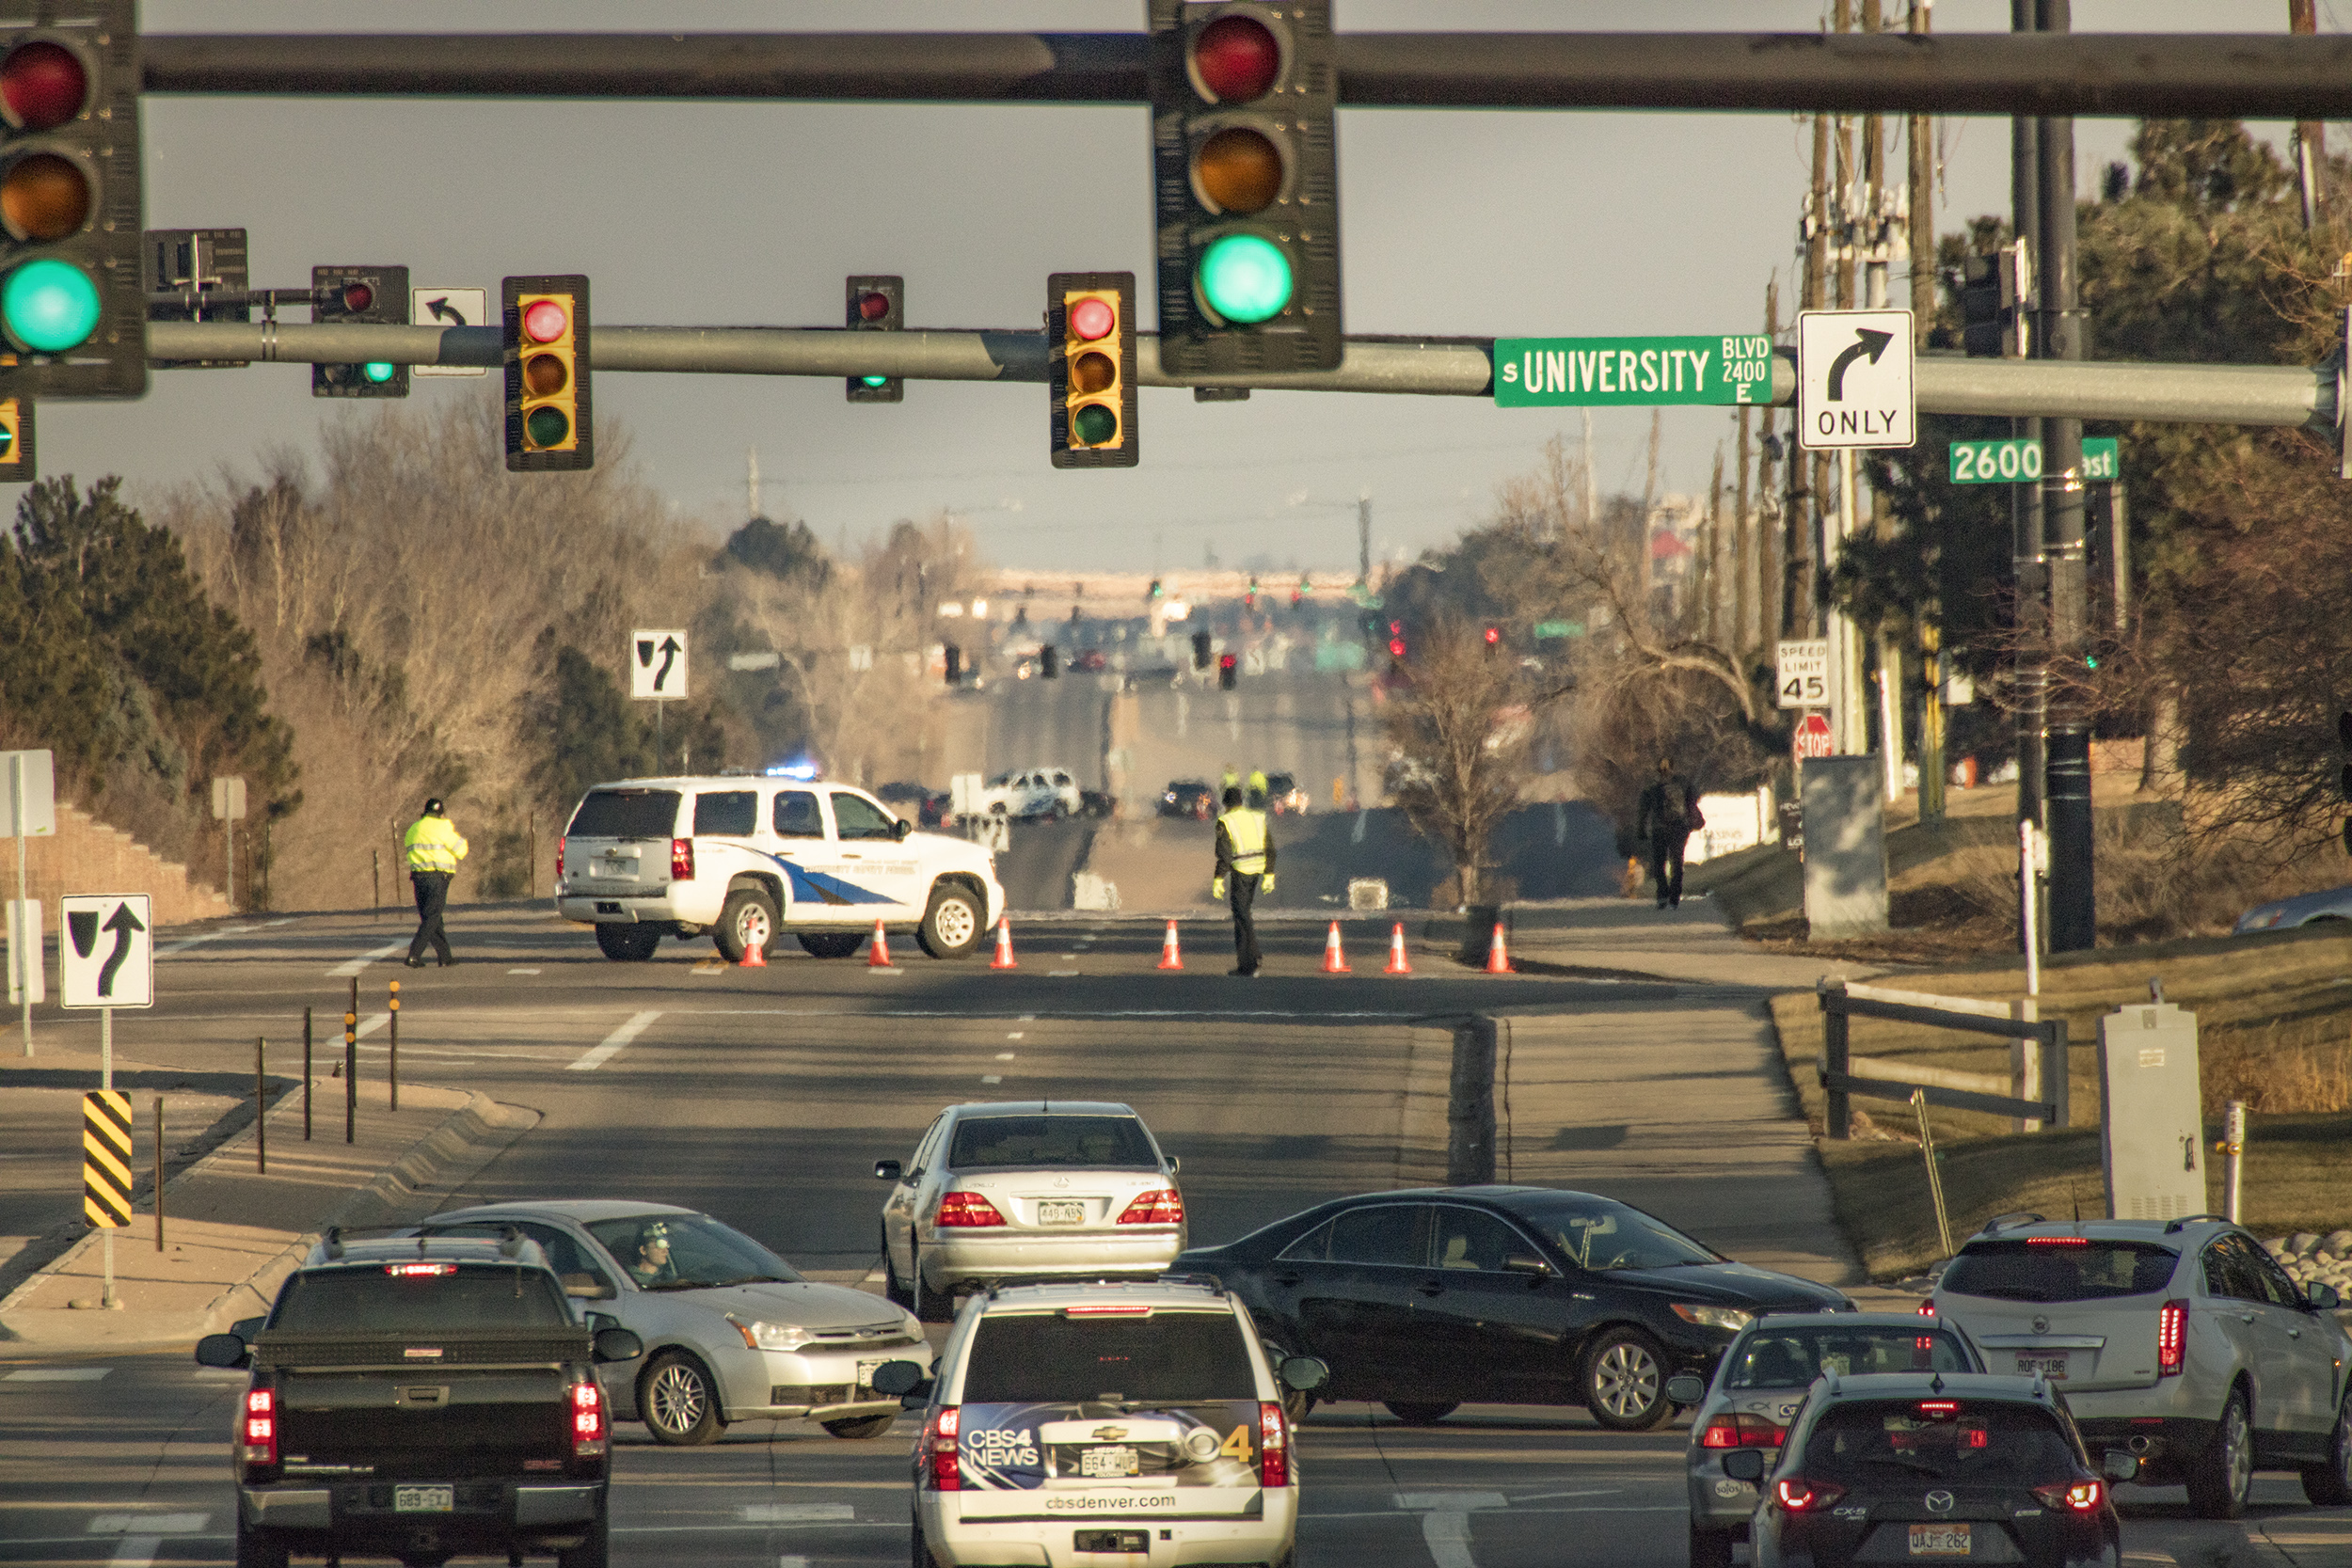 Road closure due to mass shooting, Highlands Ranch, CO. Sunday, Dec. 31, 2017